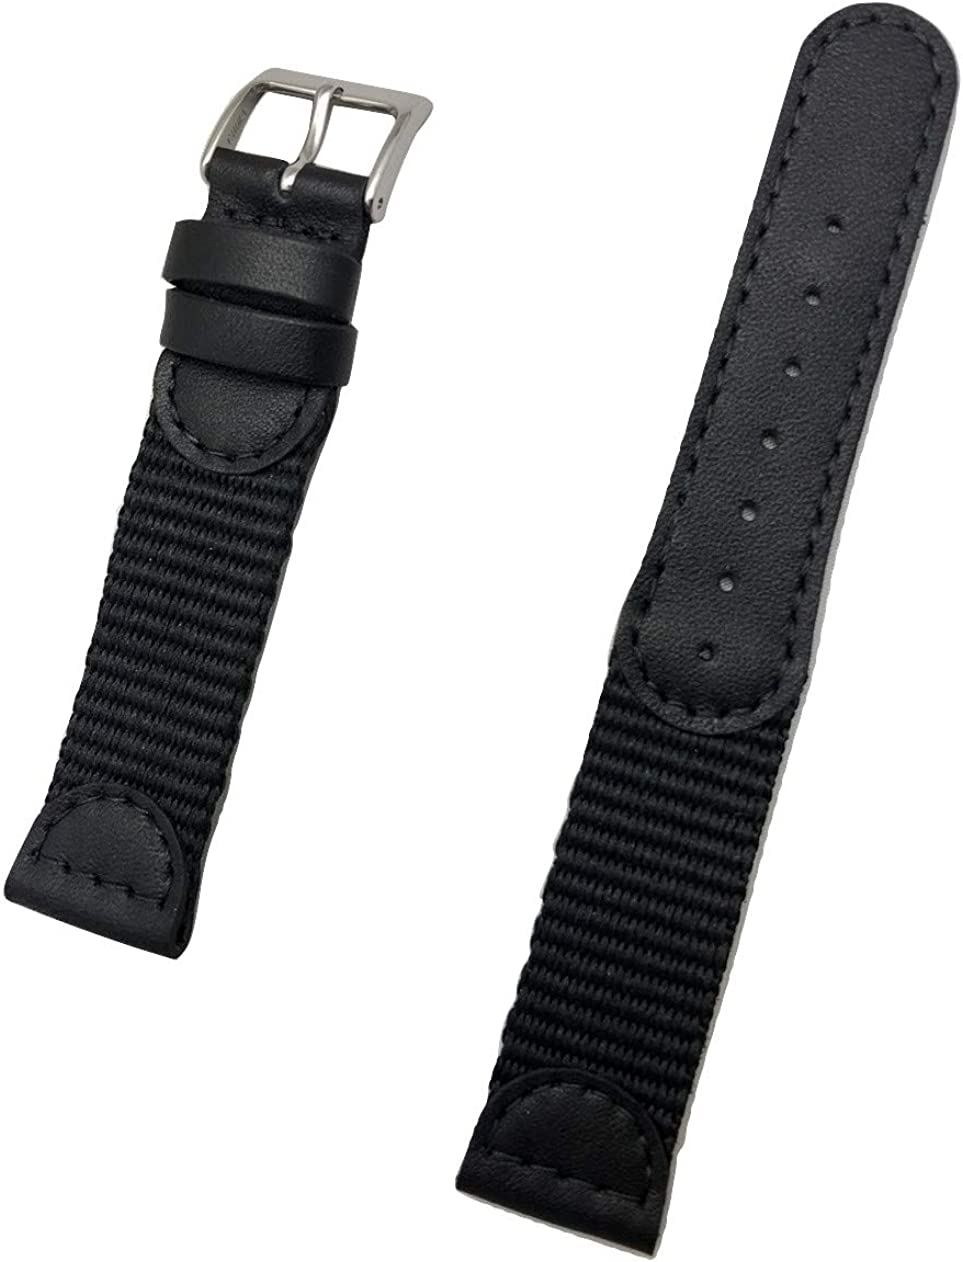 19mm Black Genuine Leather and Nylon Watch Band   Swiss Army style, Soft Replacement Wrist Strap that brings New Life to Any Watch (Mens Length)